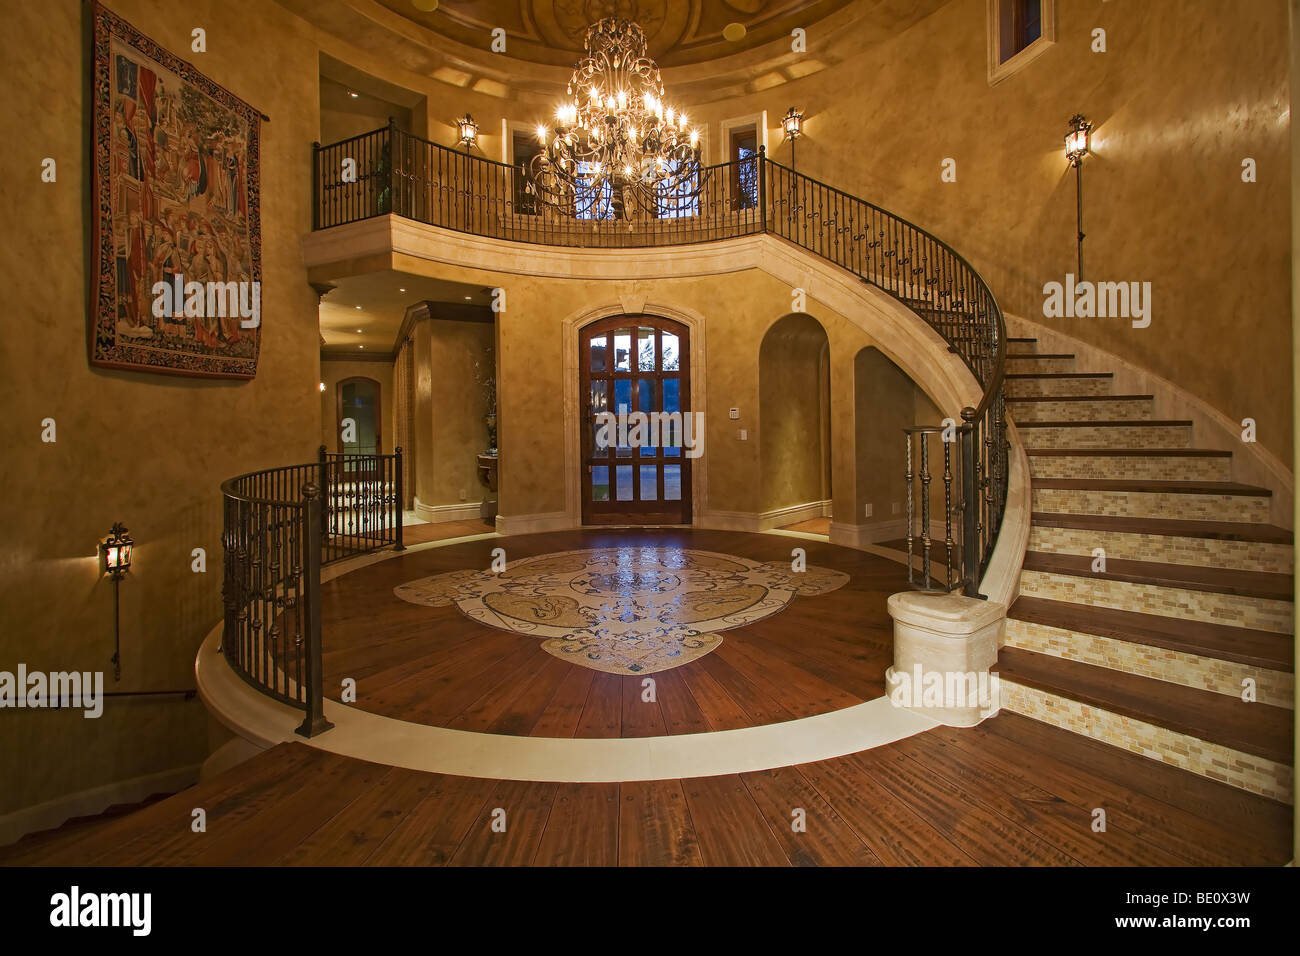 Large Foyer Images : Stunning faux finished ceiling is seen in large foyer with